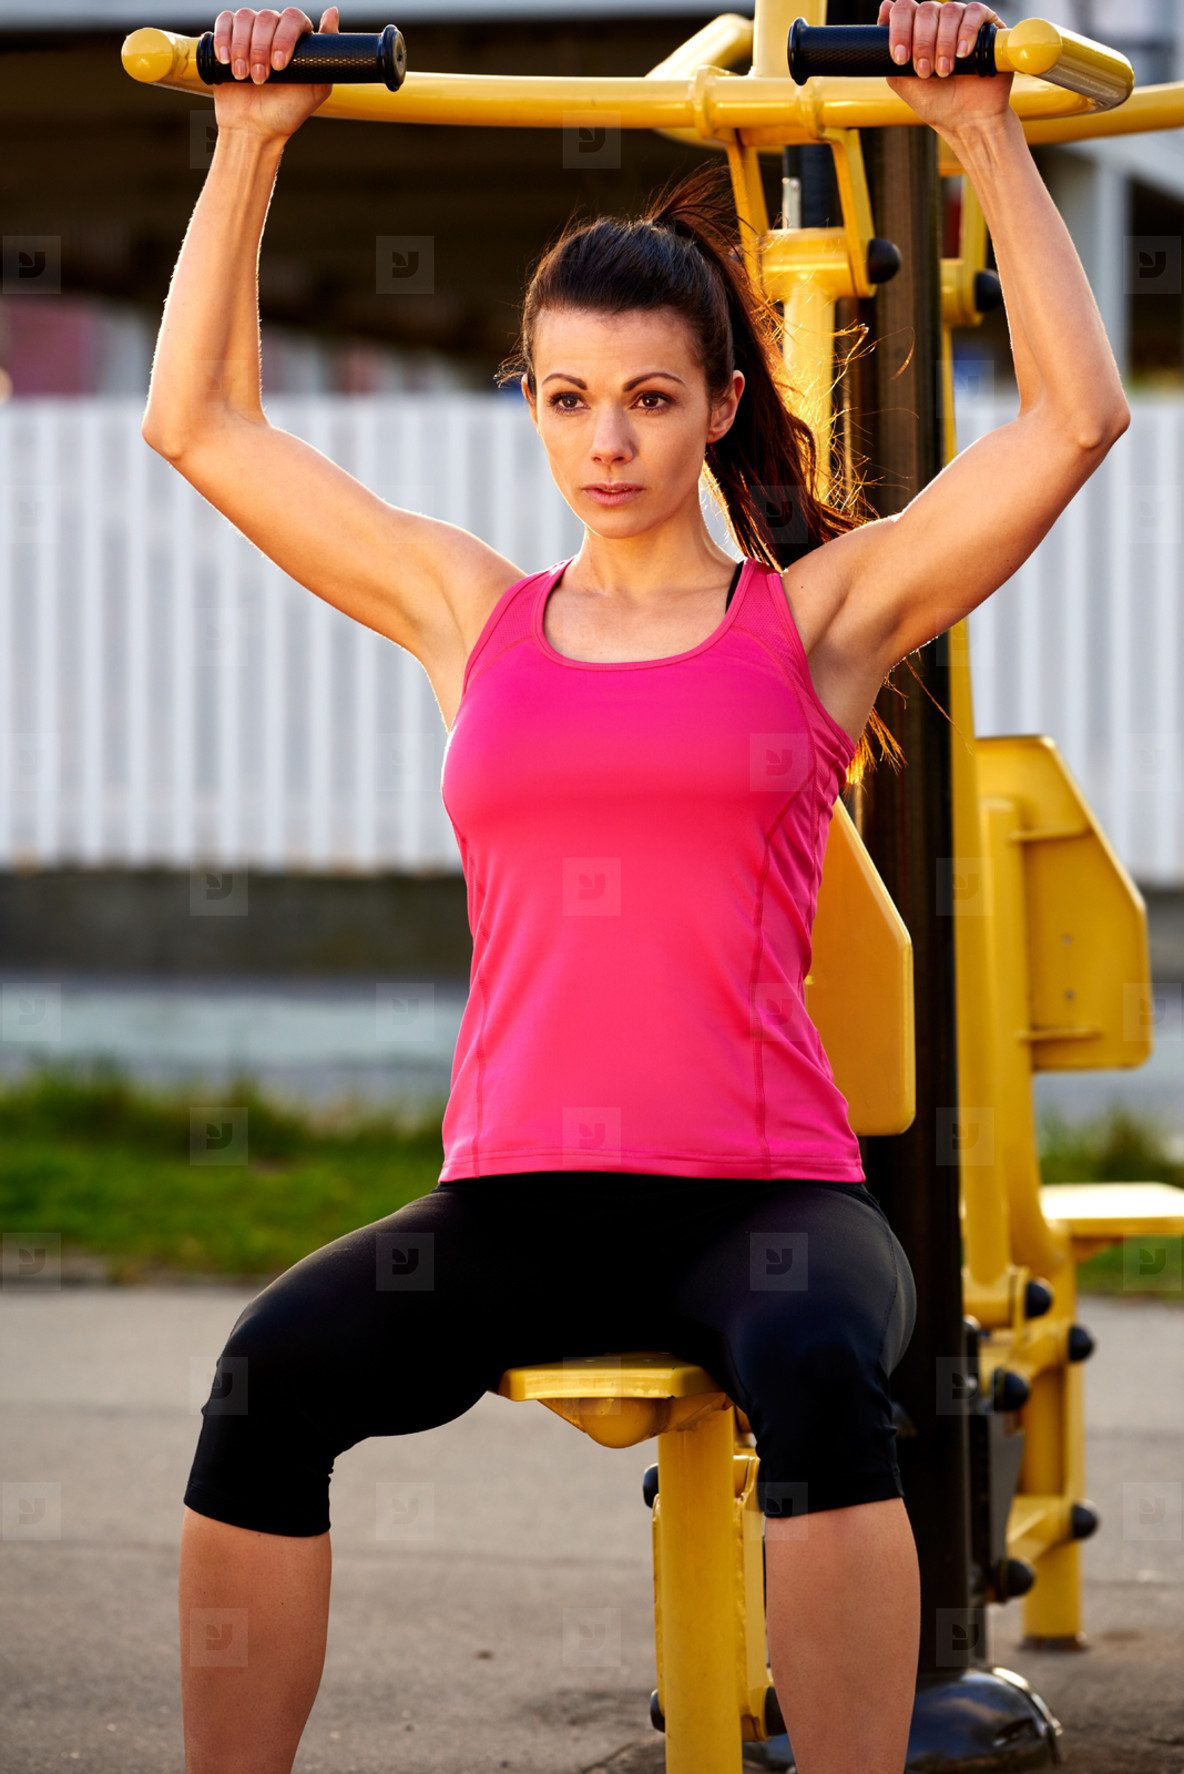 Muscular woman sitting on weights machine exercising arms